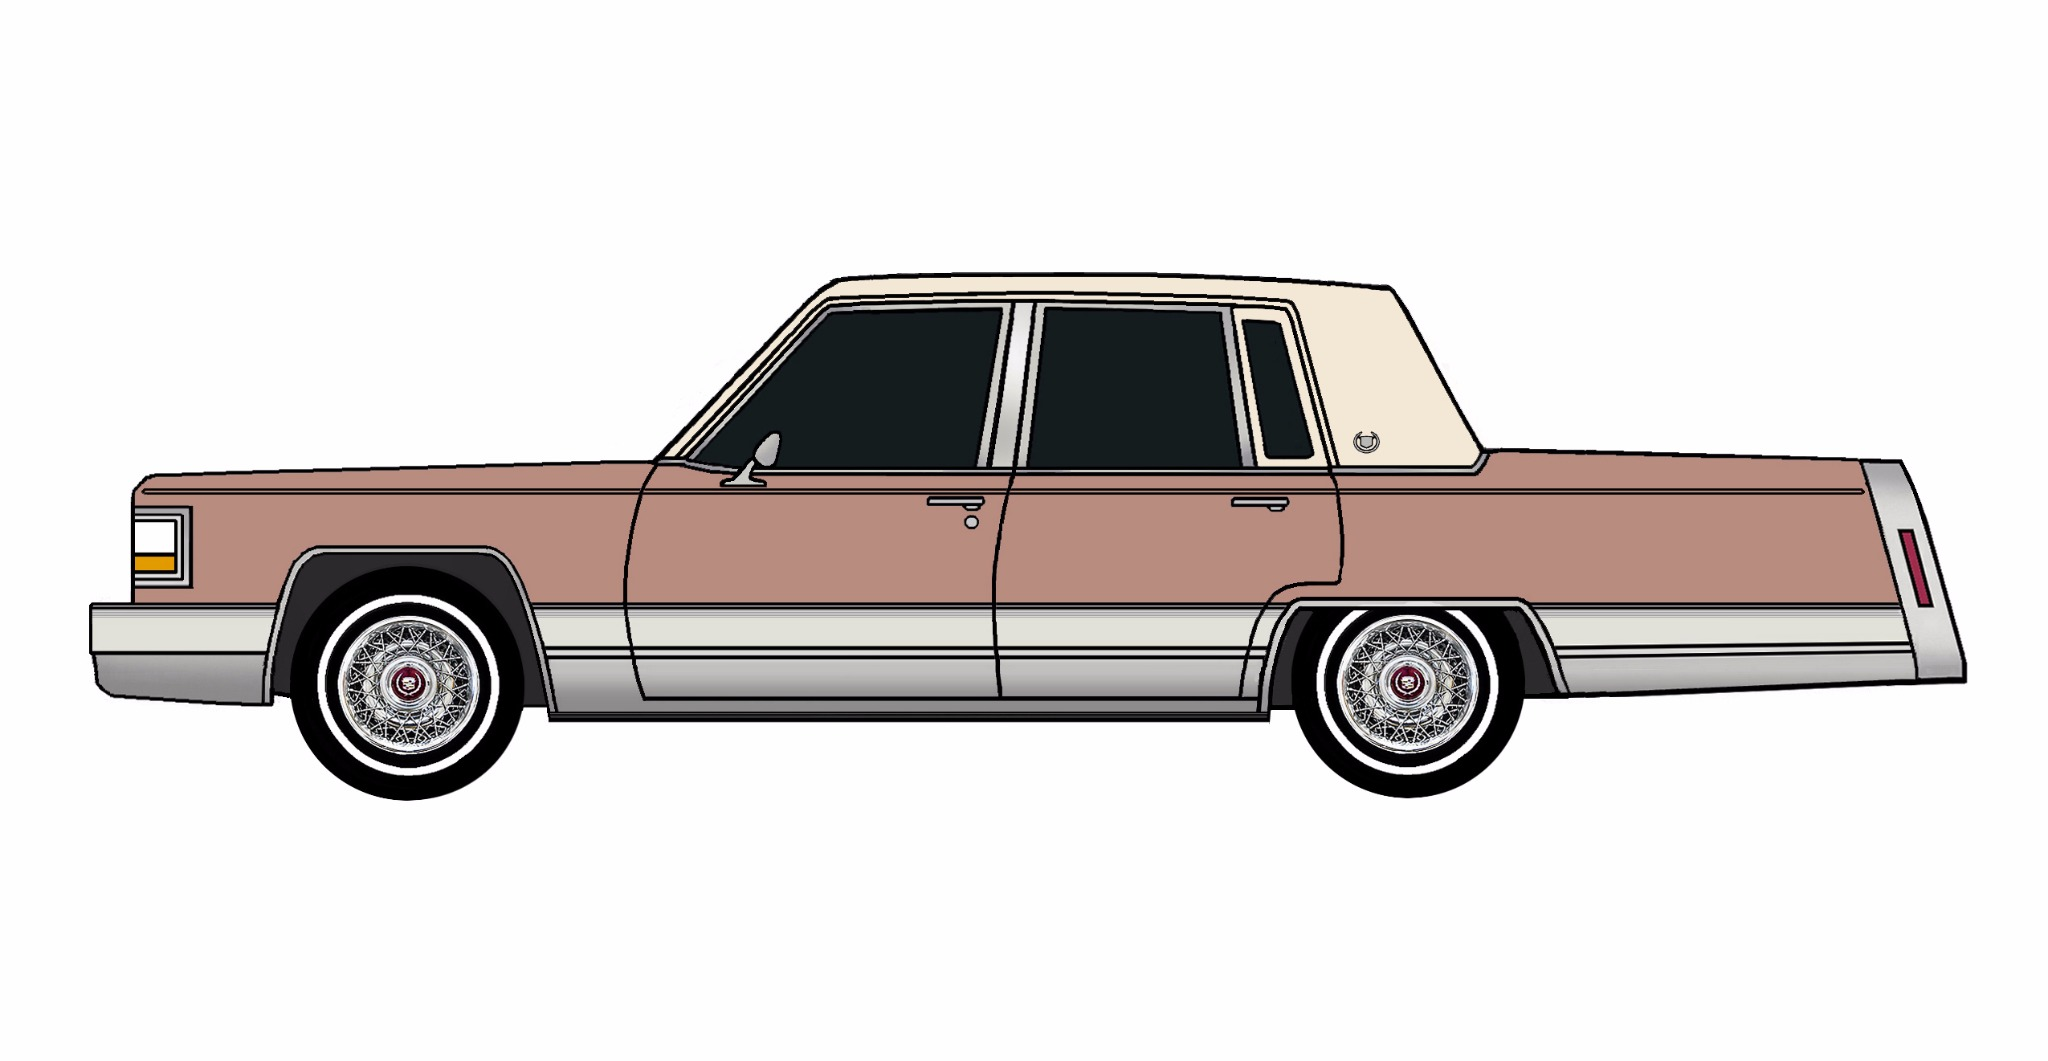 1992 Cadillac Brougham CLAY ROSE